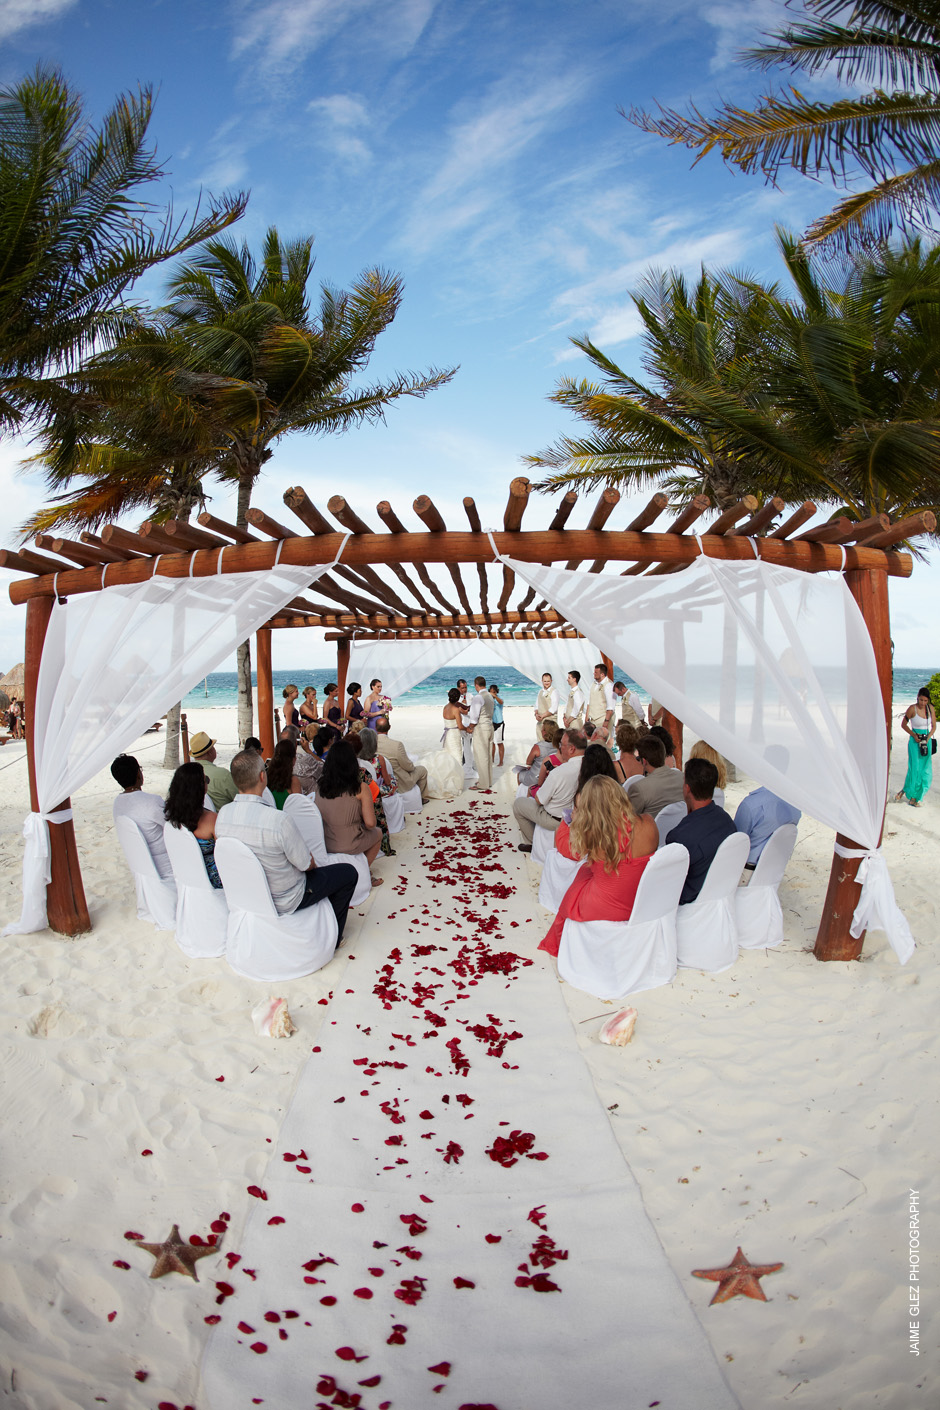 Seaside ceremony for destination wedding at The Excellence Riviera Cancun in Mexico.